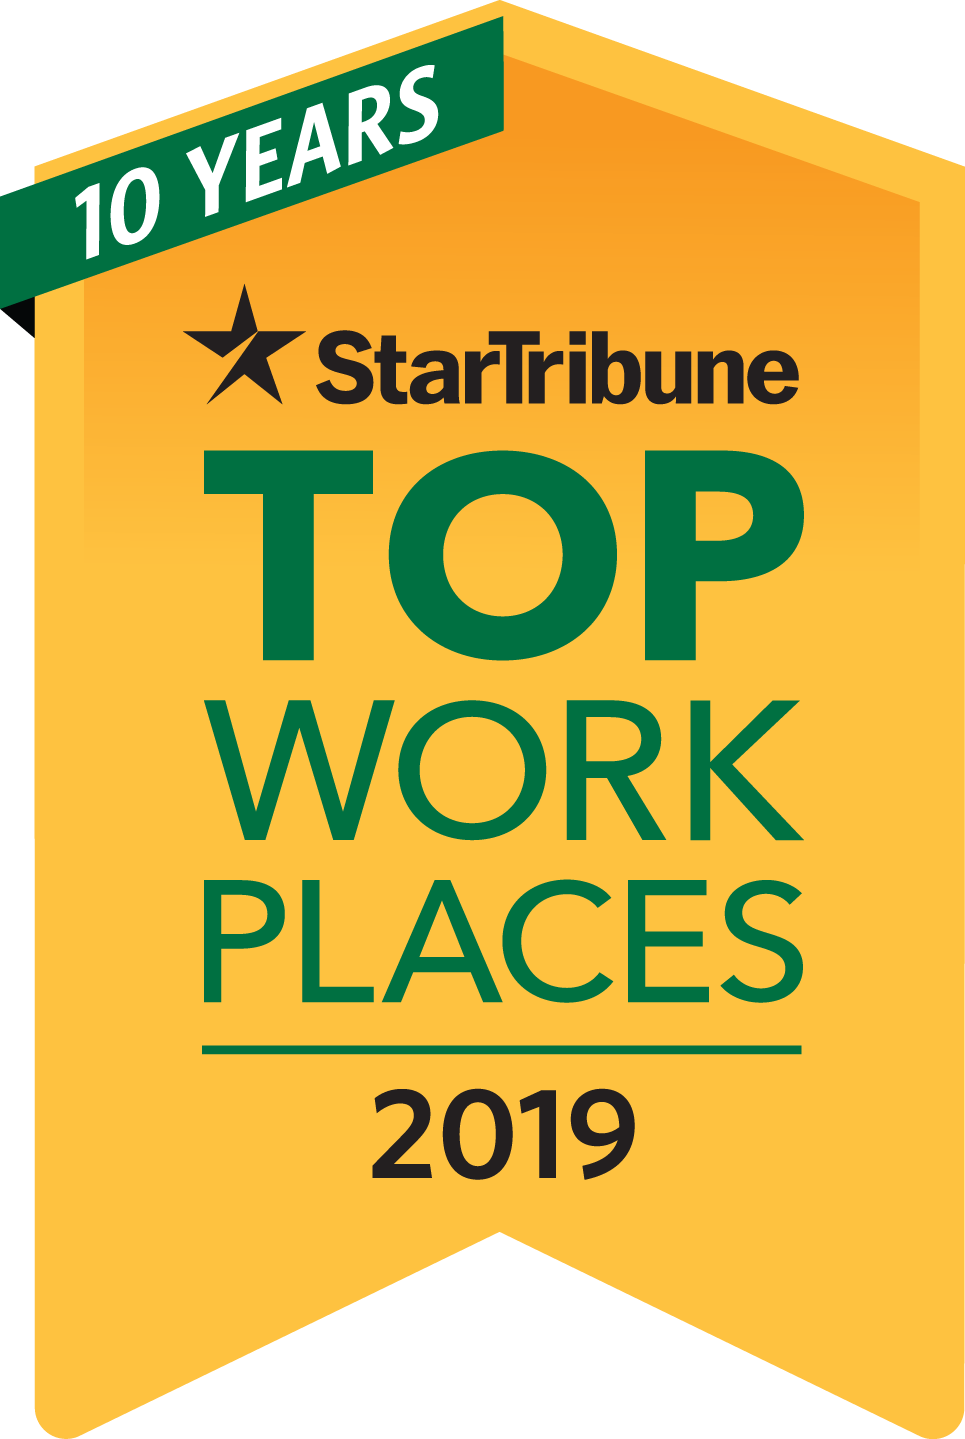 Star Tribune's Top work places 2019 icon